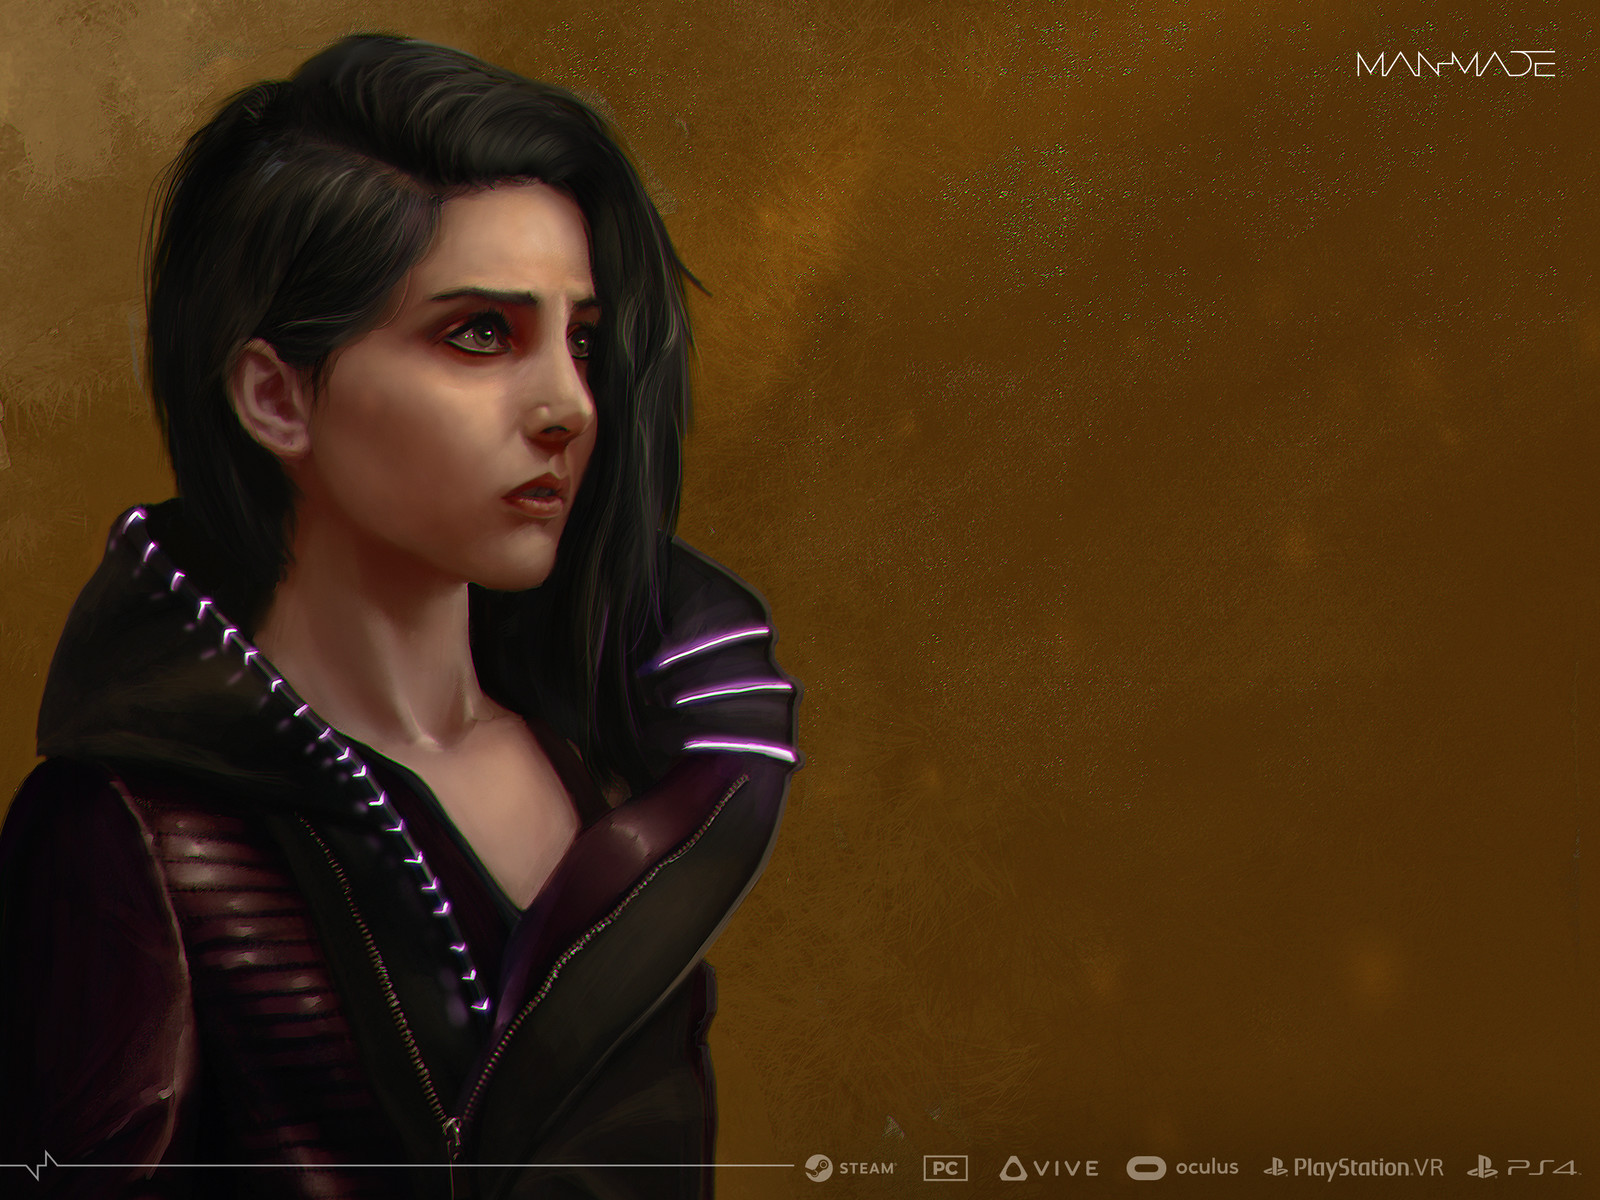 Character Illustrations, Design and Asset Design for ManMade: SciFi Action Adventure Game